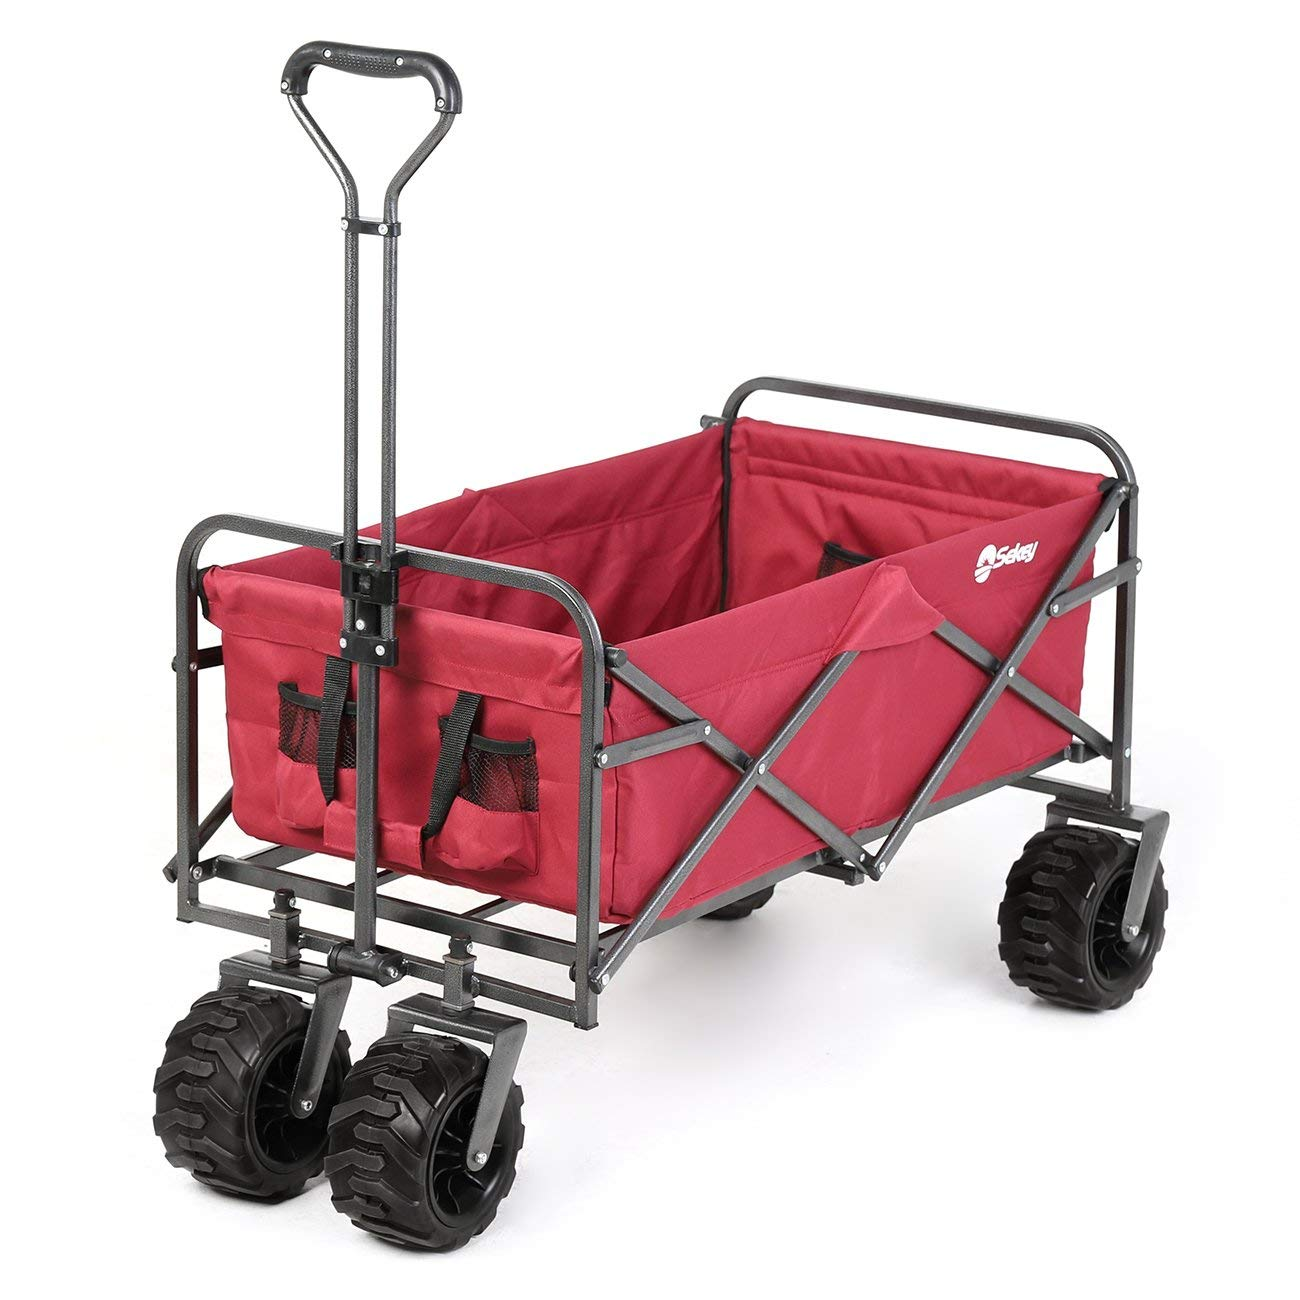 Sekey Folding Wagon Cart Collapsible Outdoor Utility Wagon Garden Shopping Cart Beach Wagon with All-Terrain Wheels, 265 Pound Capacity, Red